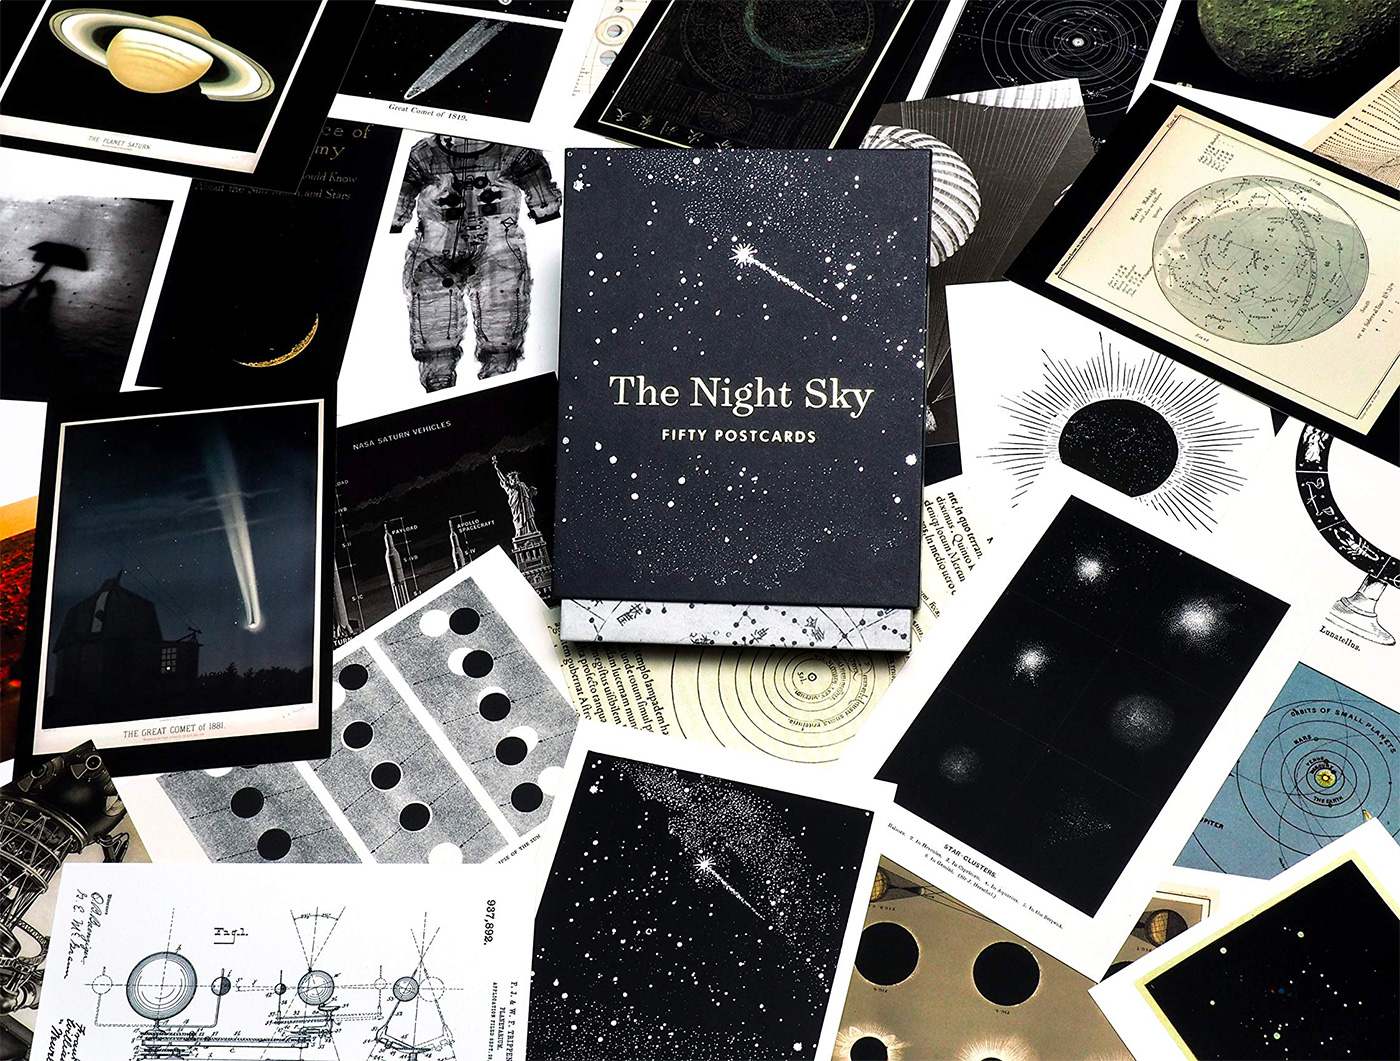 These Premium Postcards Celebrate The Starry Skies Above at werd.com